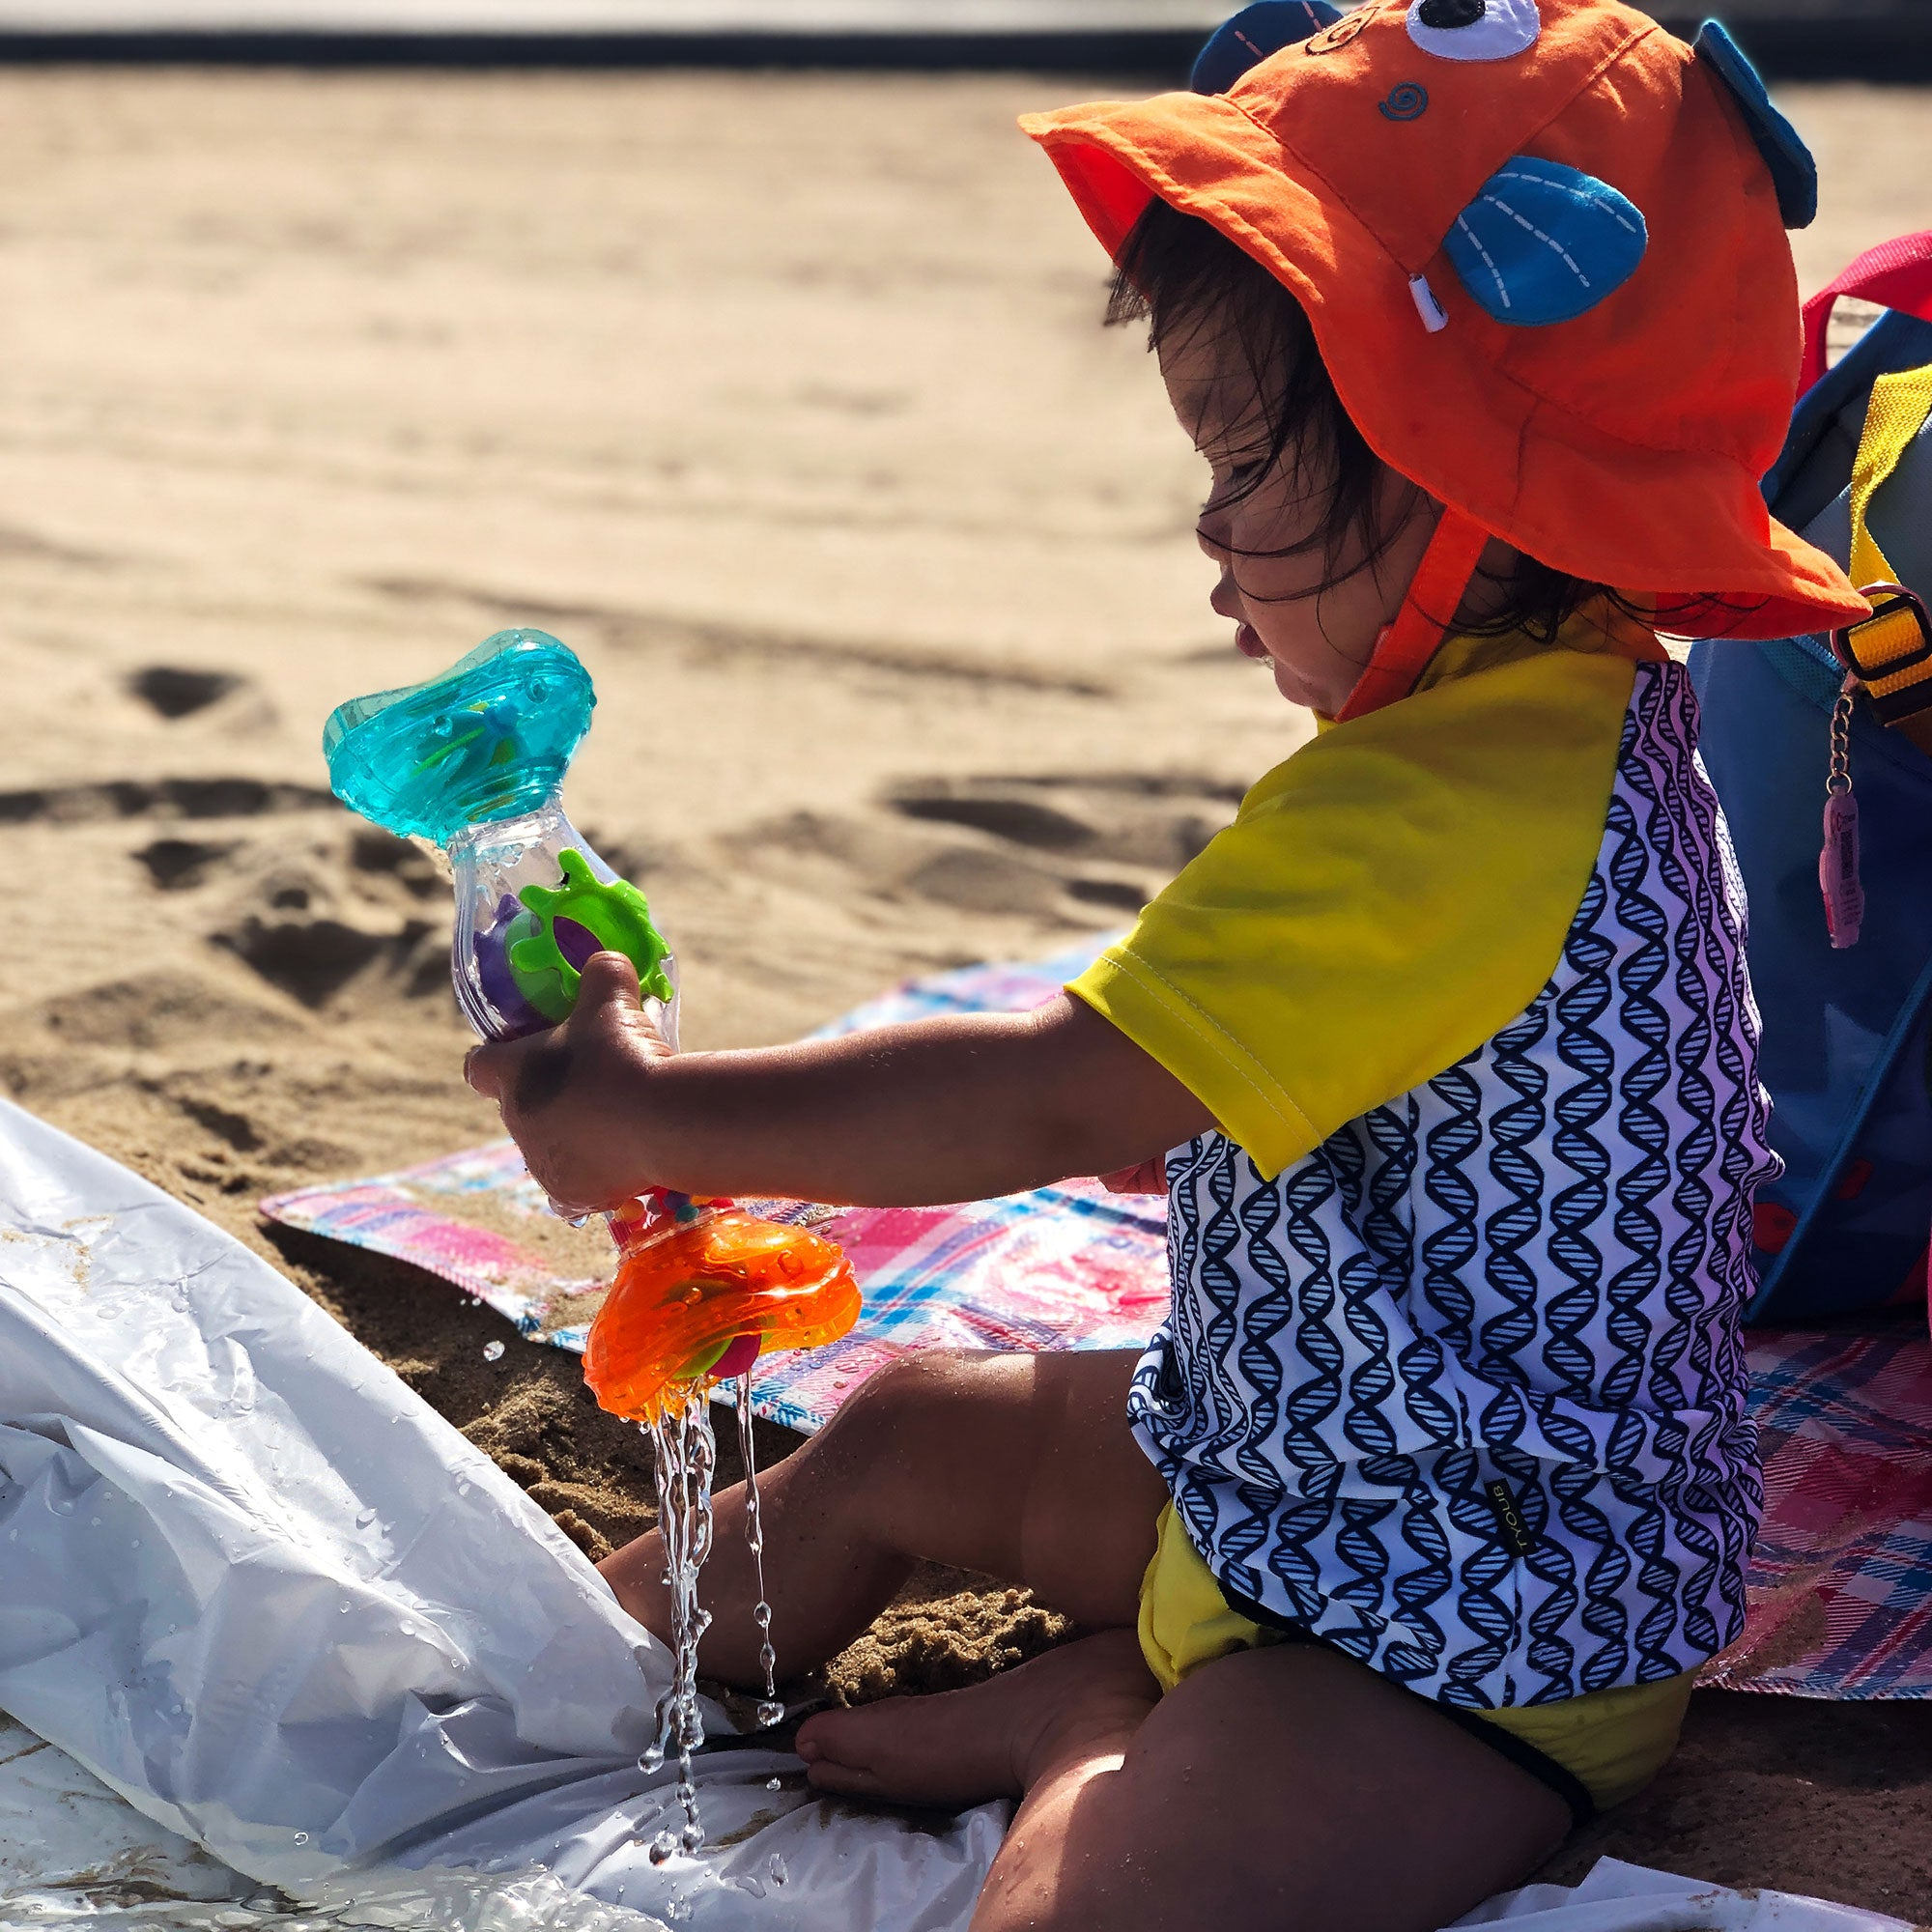 a toddler girl in the beach is playing with Playgro Rainmaker toys